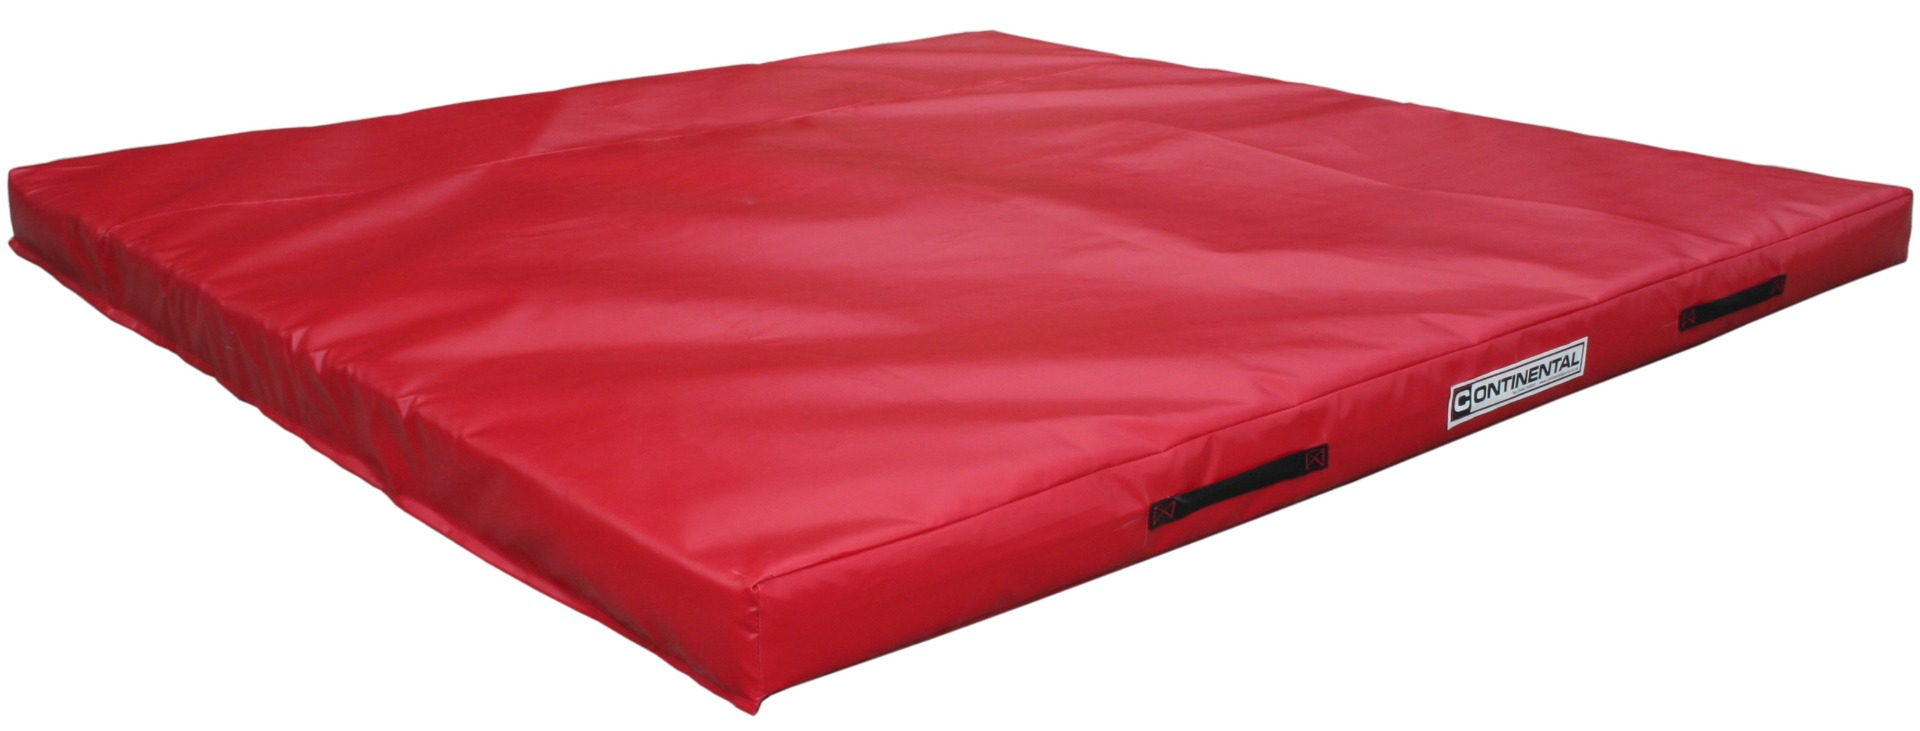 Supplementary soft landing mat